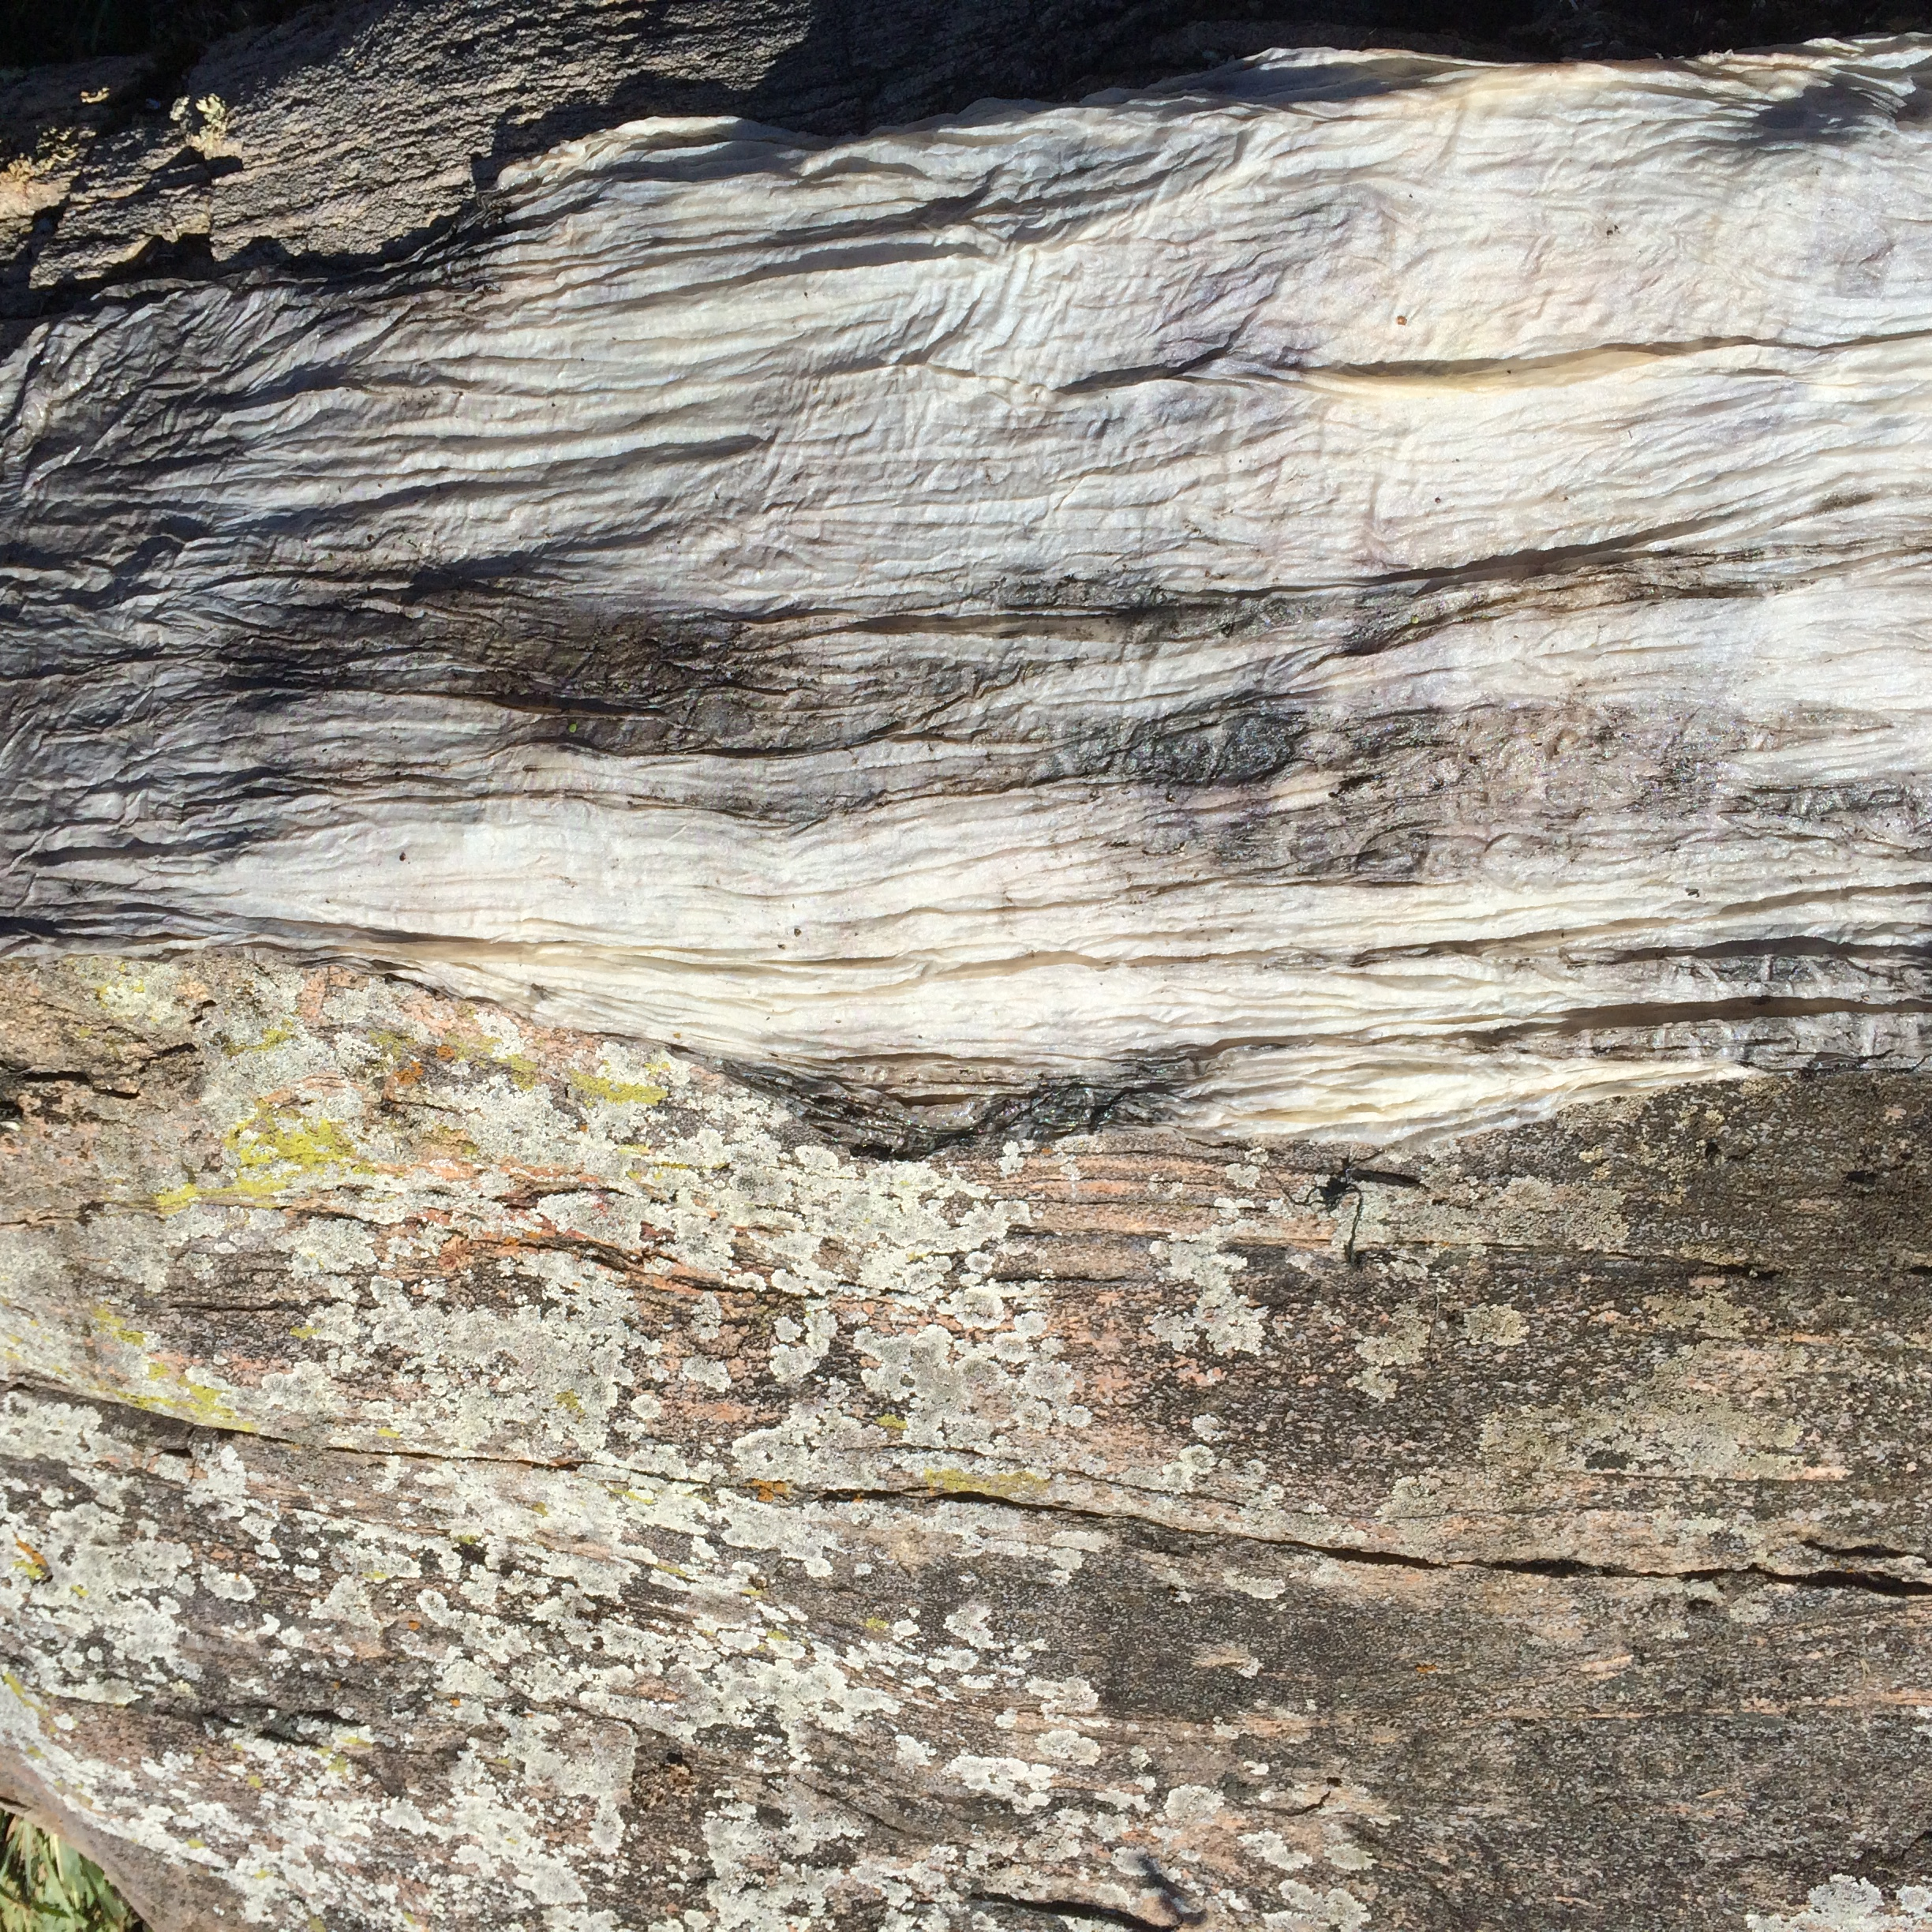 Gneiss Outcrops